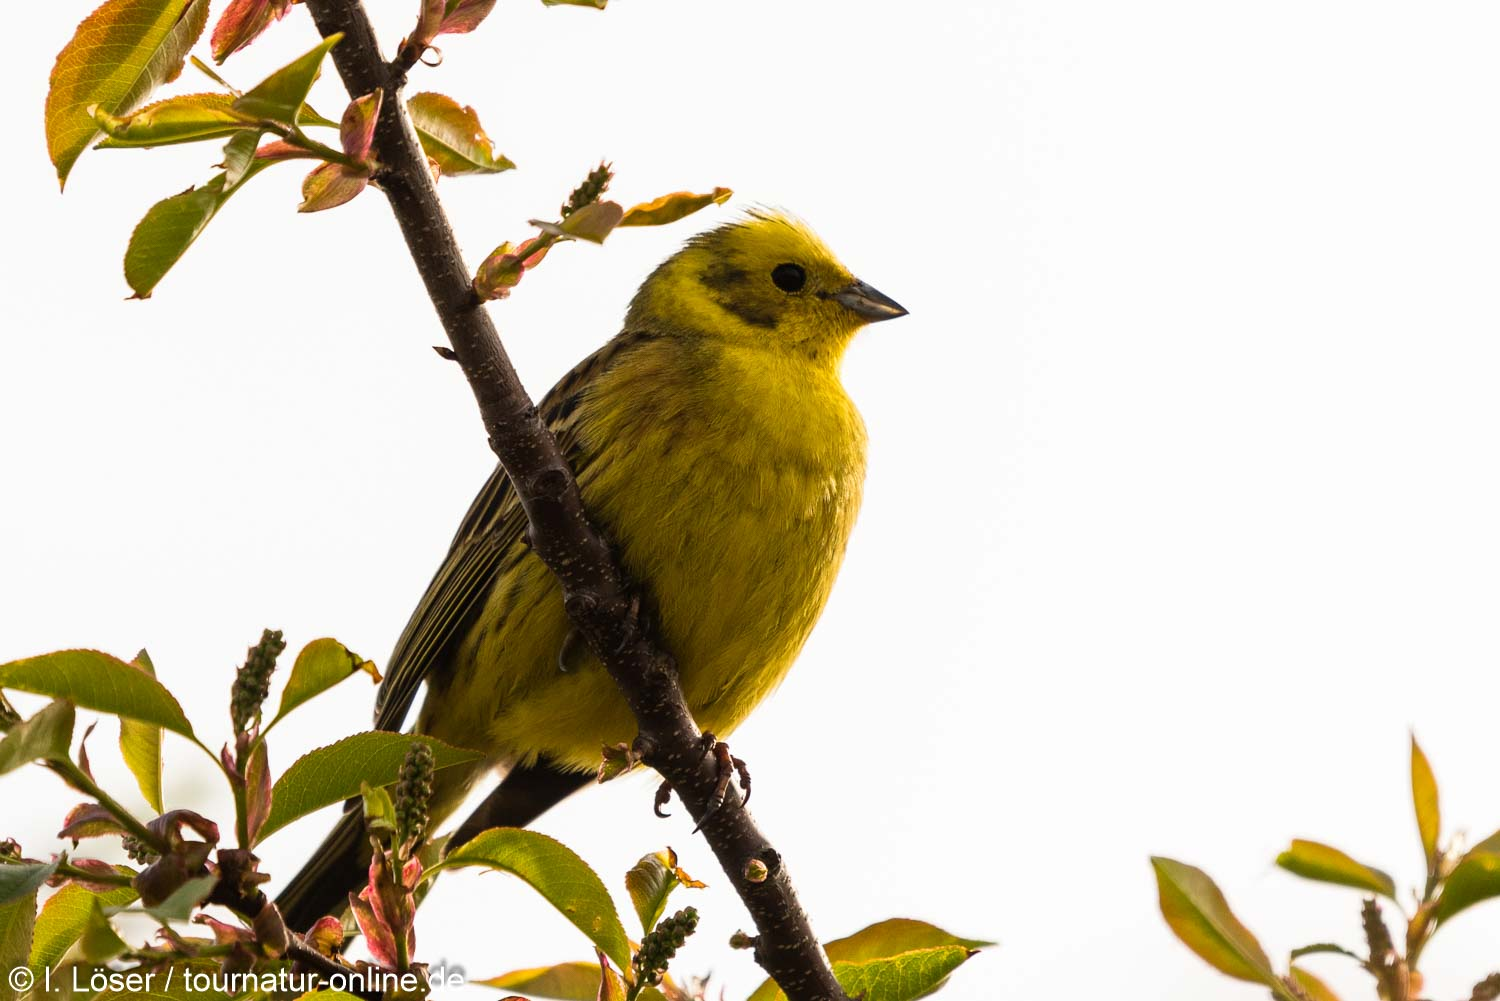 Goldammer - yellowhammer (Emberiza citrinella)